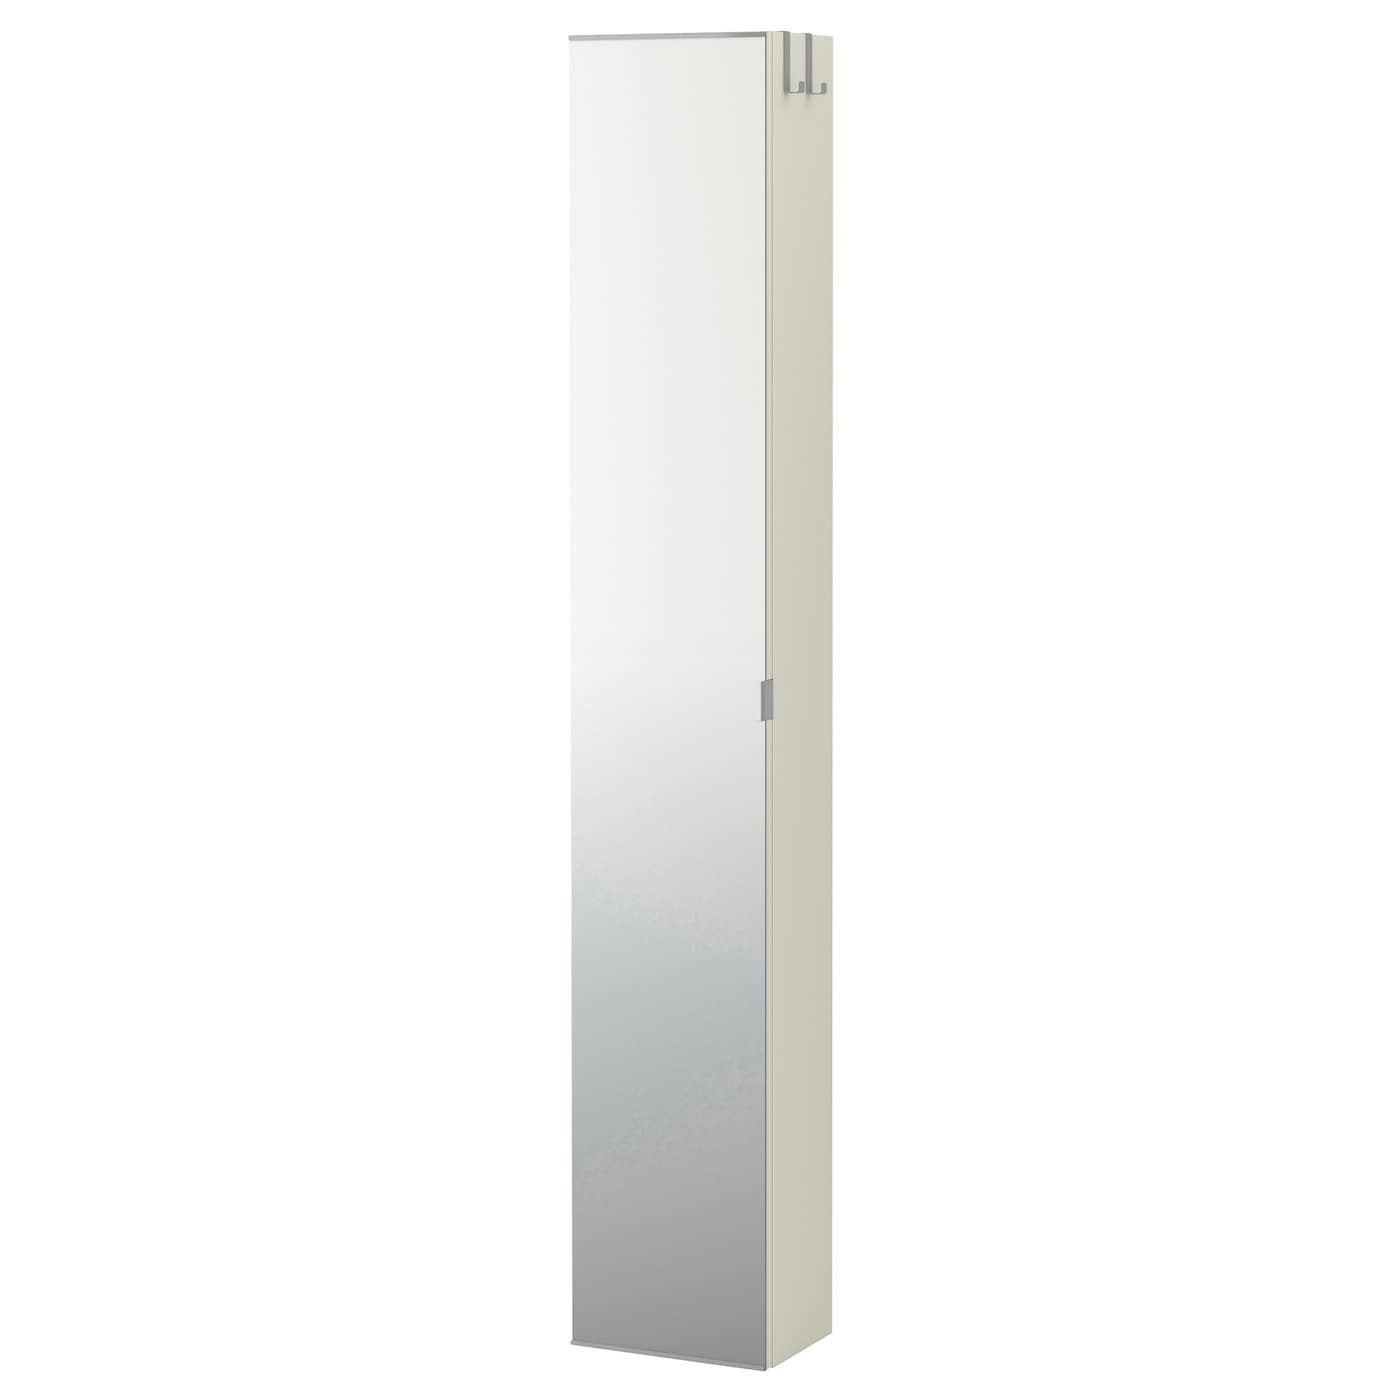 IKEA LILLNGEN High Cabinet With Mirror Door